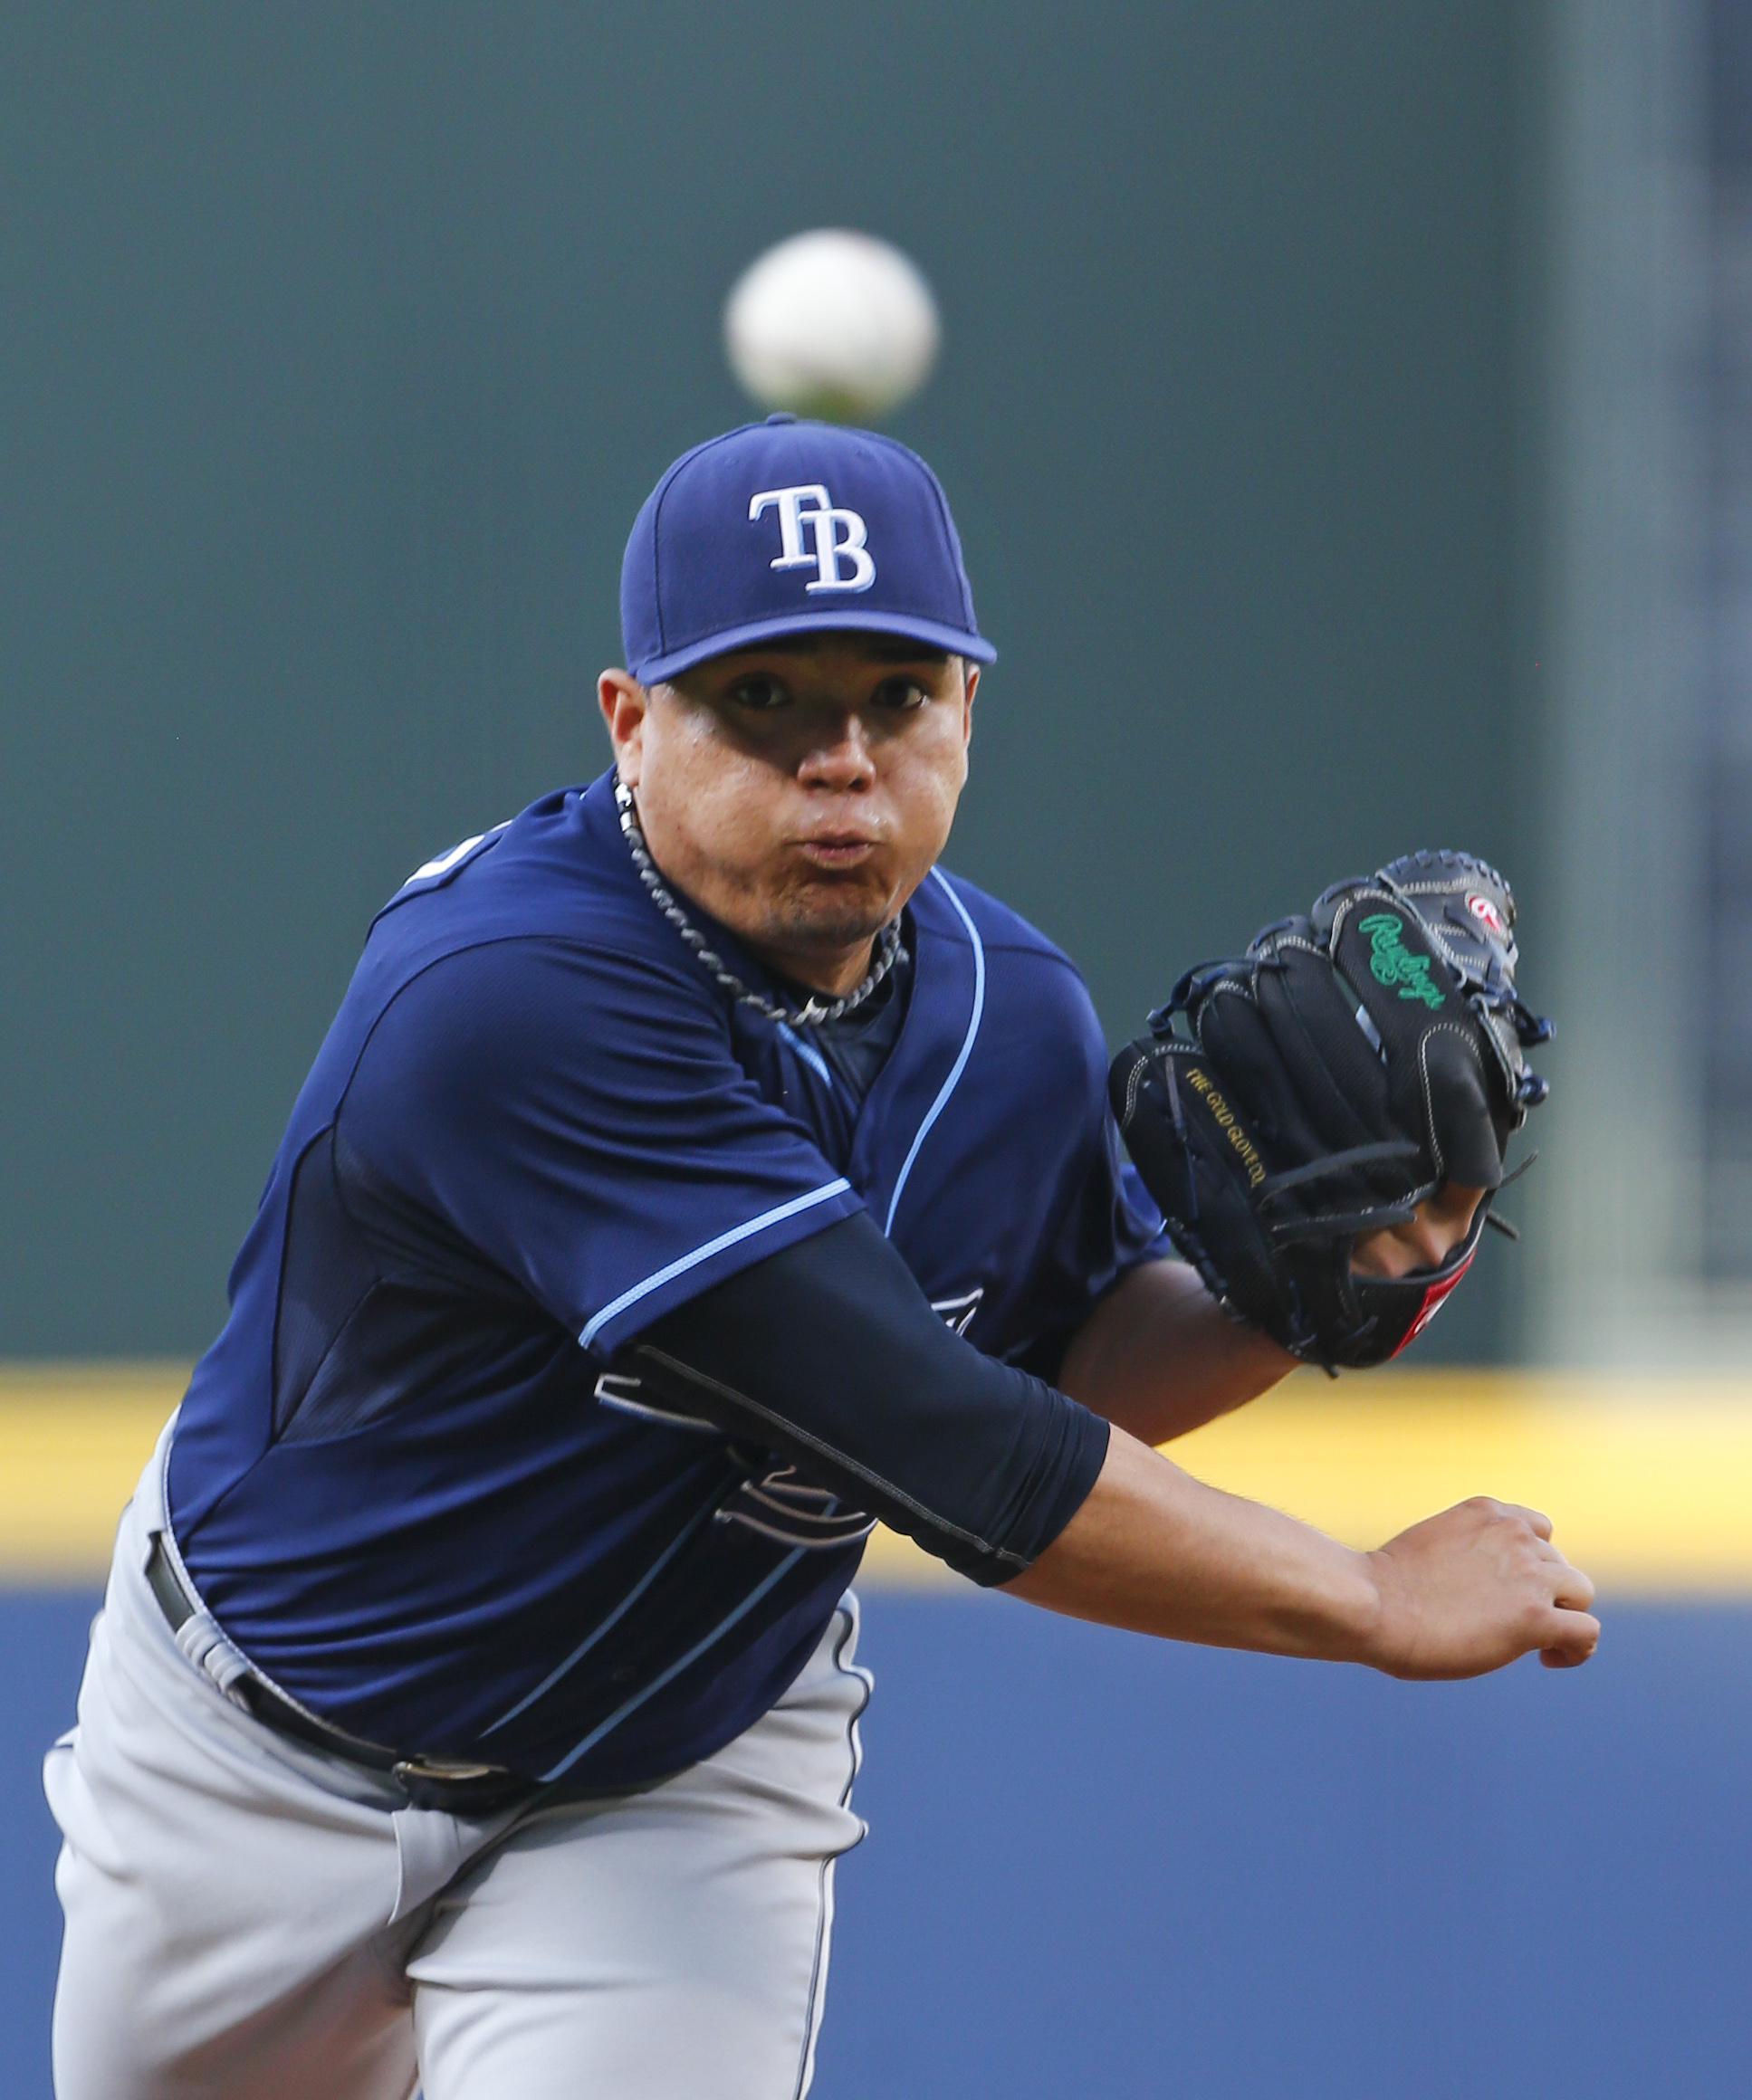 Tampa Bay Rays starting pitcher Erasmo Ramirez (30) works in the first inning of a baseball game  against the Atlanta Braves Tuesday, May 19, 2015, in Atlanta.  (AP Photo/ John Bazemore)